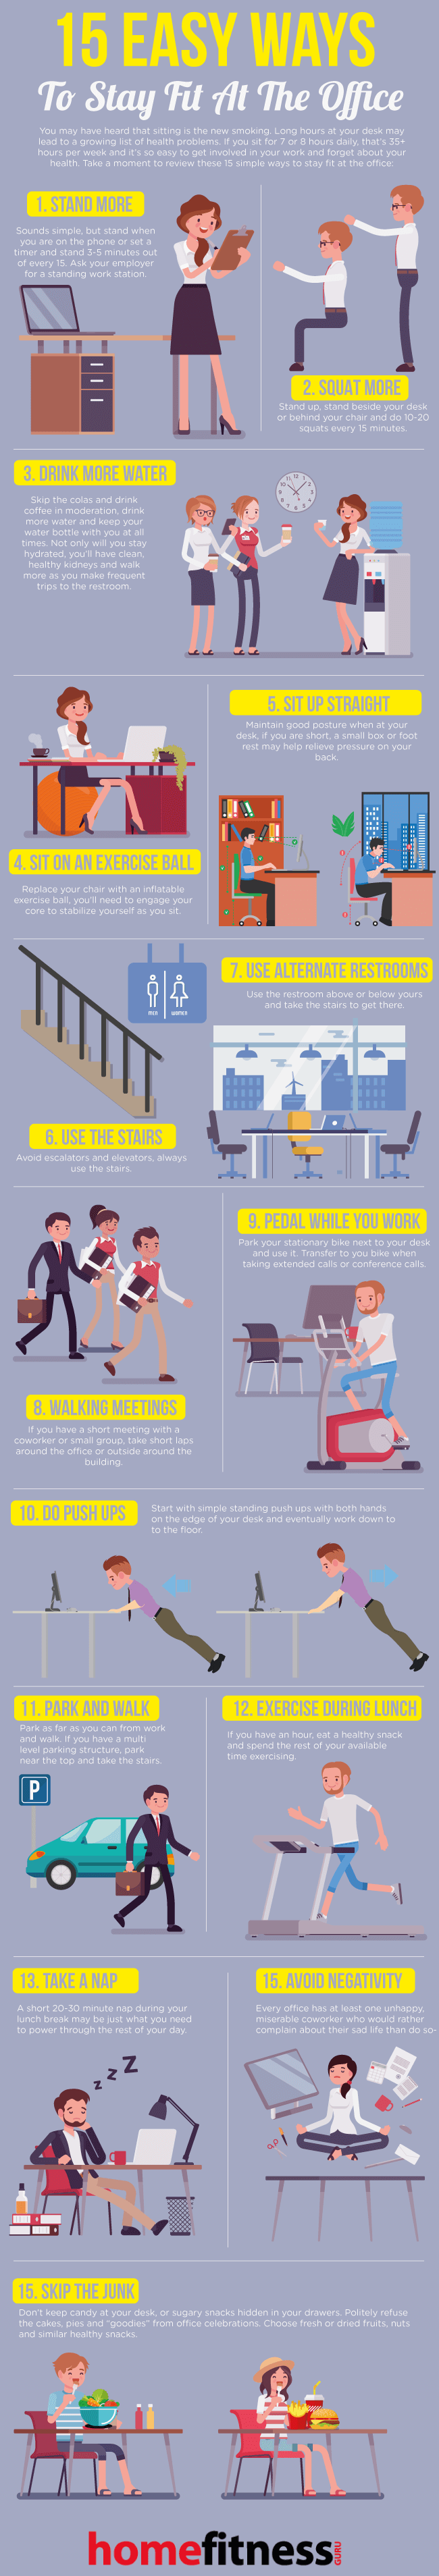 15 Best Ways To Stay Fit At The Office